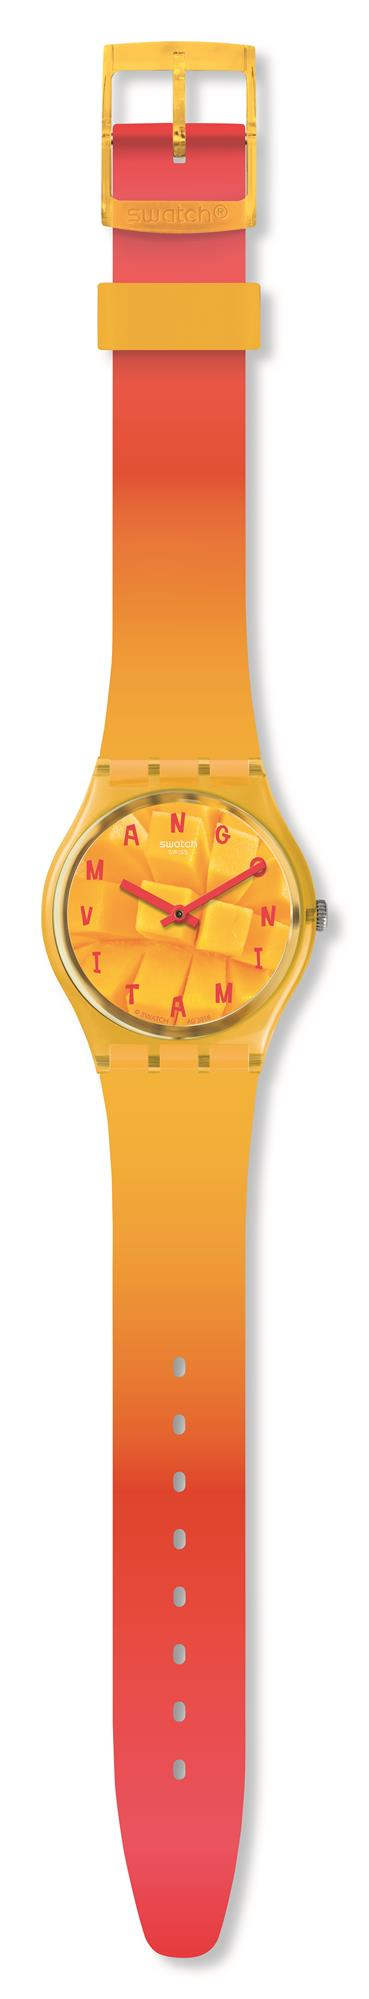 Swatch Energy Coeur De Mangue Mango Dial Unisex Watch GO119 34mmThisSwatch Energy Coeur De Mangue Mango Dial Unisex Watch GO119 34mm brings a sun-kissed design with a mango on the dial. The mango dial is complimented by purple indexes and hands, powered by a quartz movement. The mango is protected by a orange plastic case and glass. An orange silicone strap is then fastened using a standard buckle.This watch has a water resistance of 30 metres, making it suitable for light splashes.Key Features:Mango DialOrange Silicone StrapAnalogue DisplayQuartz Movement30m Water ResistantStandard BuckleThe Brand: SwatchSwatch watches are globally-renowned for their trademark combination of quality Swiss watchmaking, pioneering use of plastic cases and straps, and eye-catching designs. There is a Swatch watch to suit every age, taste and lifestyle, with this variety and sense of difference ensuring that Swatch watches remain some of the most popular and sought after currently manufactured.